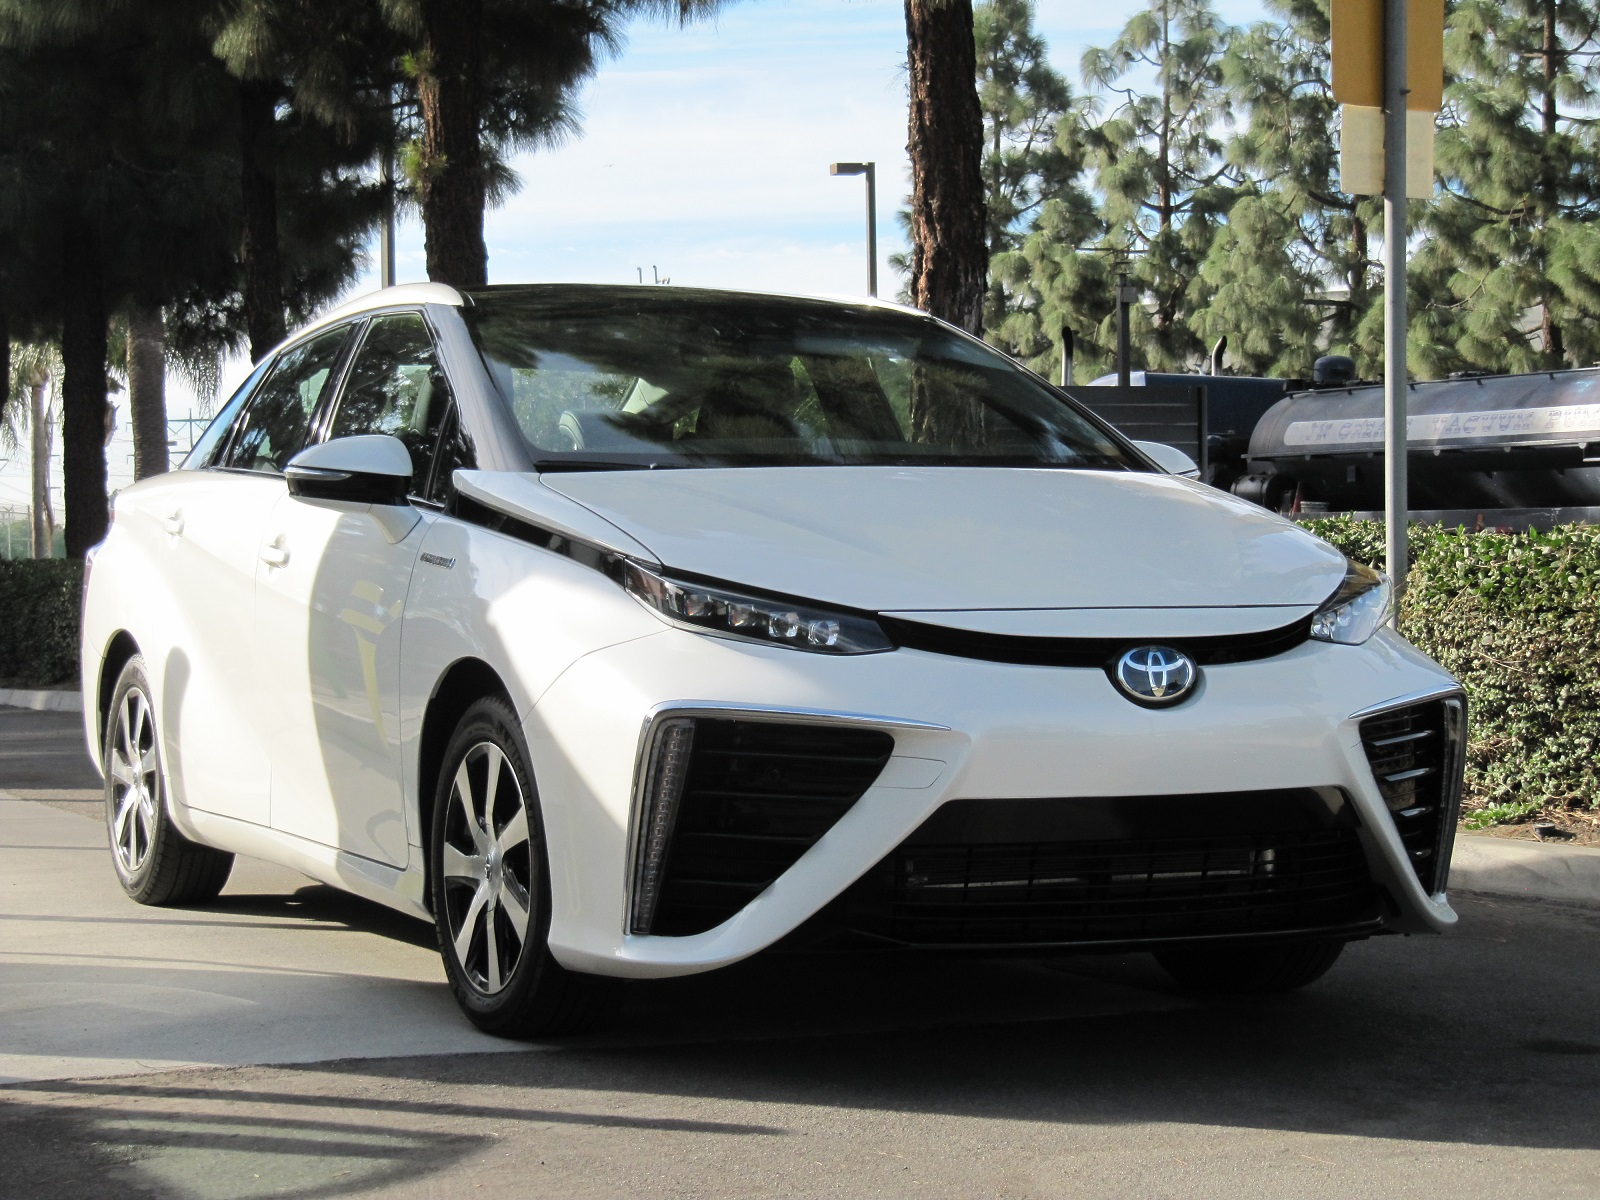 How Much Money Does The 2016 Toyota Mirai Lose? A Lot, Perhaps